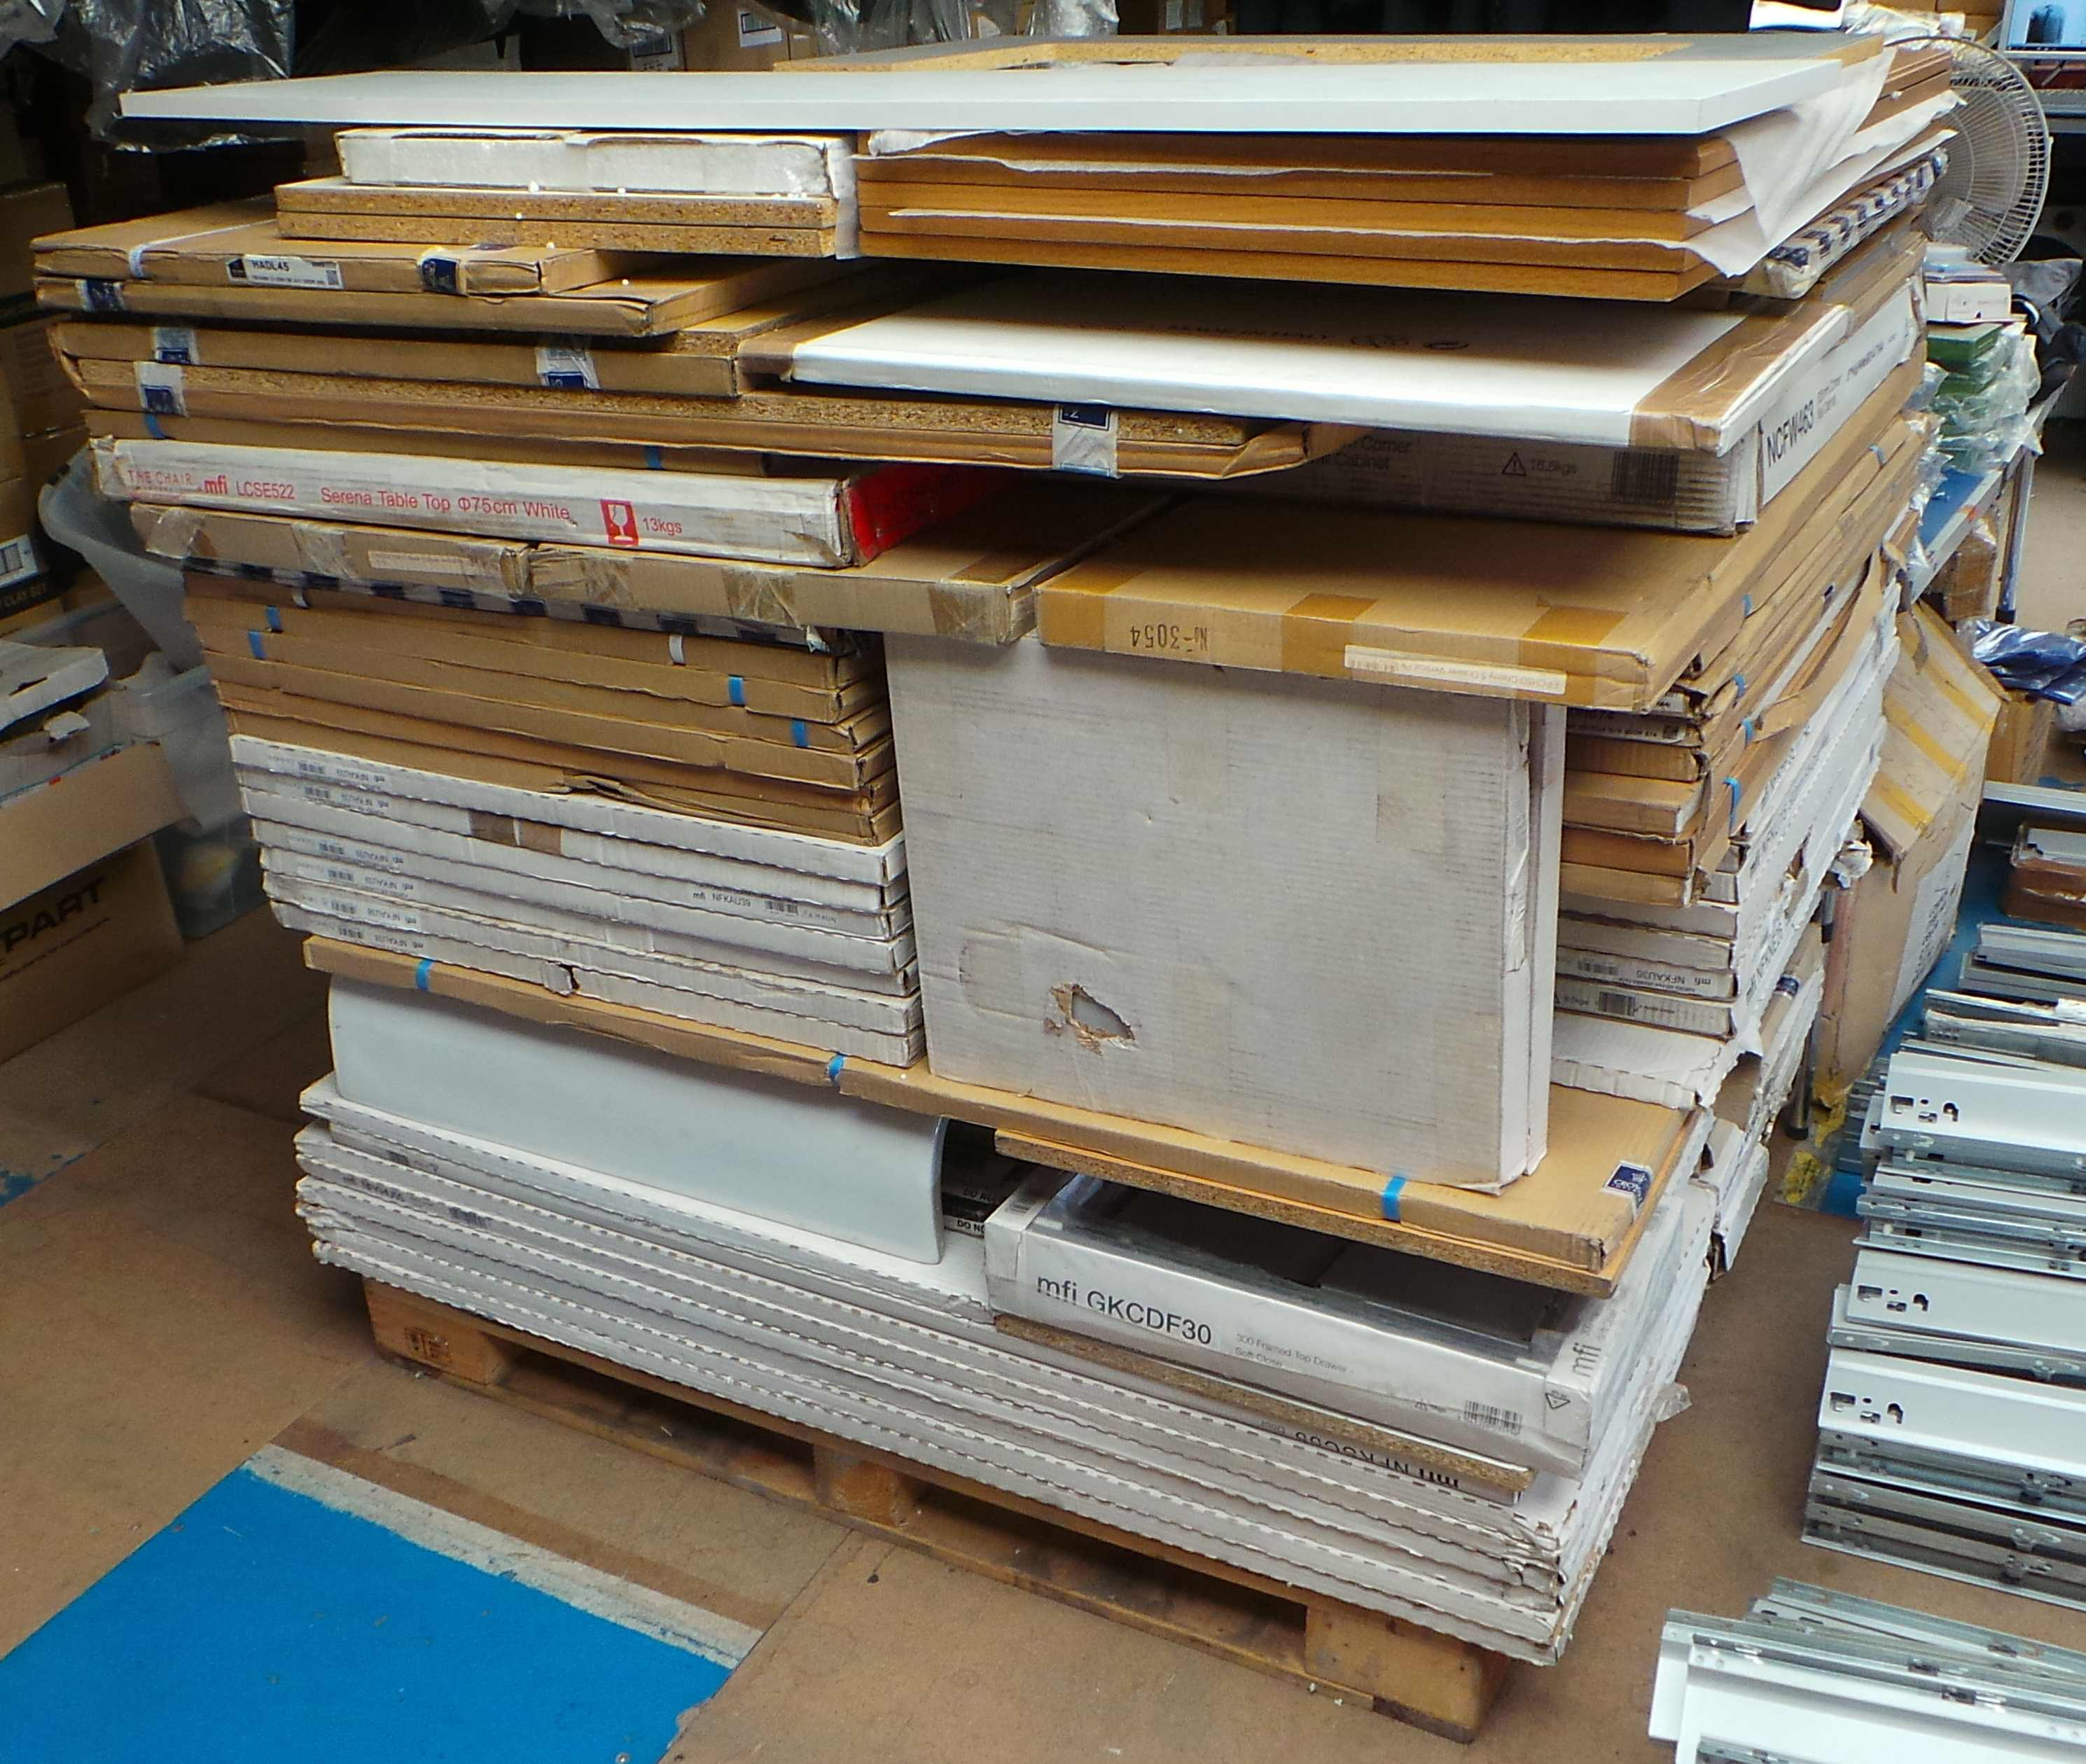 Mfi Kitchen Cabinets: Pallet Of 178 Mixed Kitchen Doors, Drawer Packs, Wall